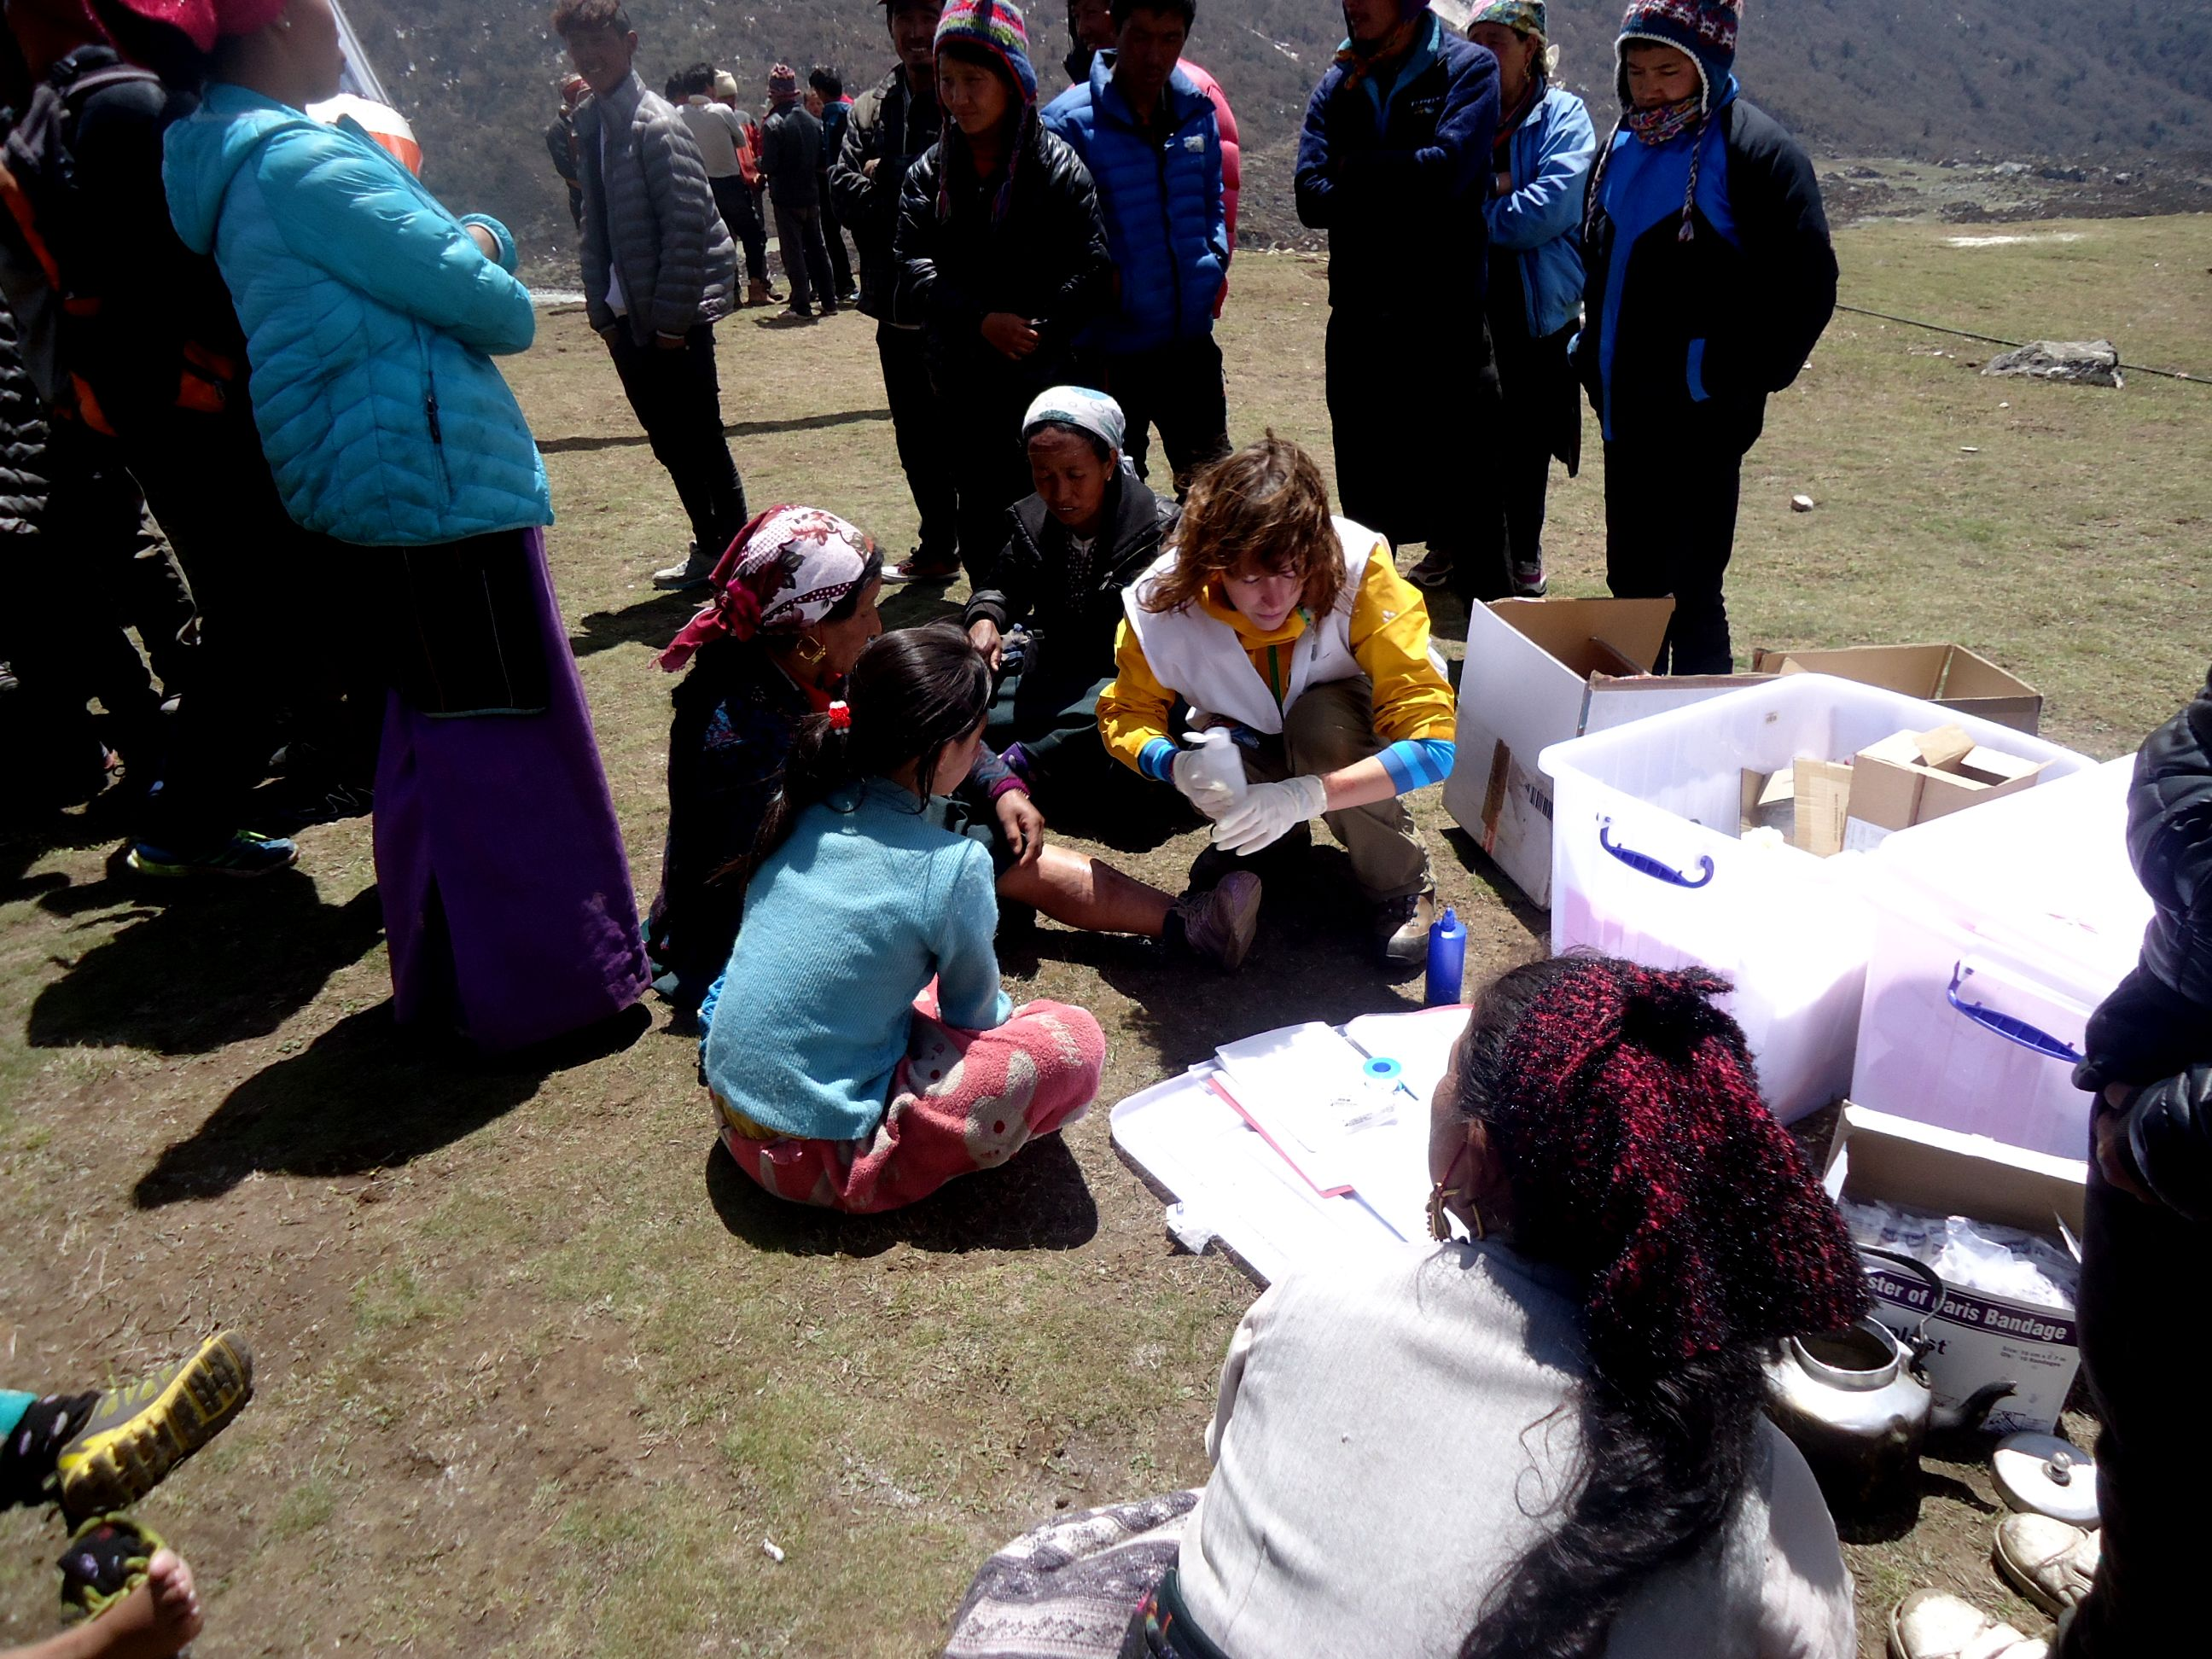 MSF nurse, Anne Kluijtmans providing medical assistance in remote regions of Nepal. Photo: MSF